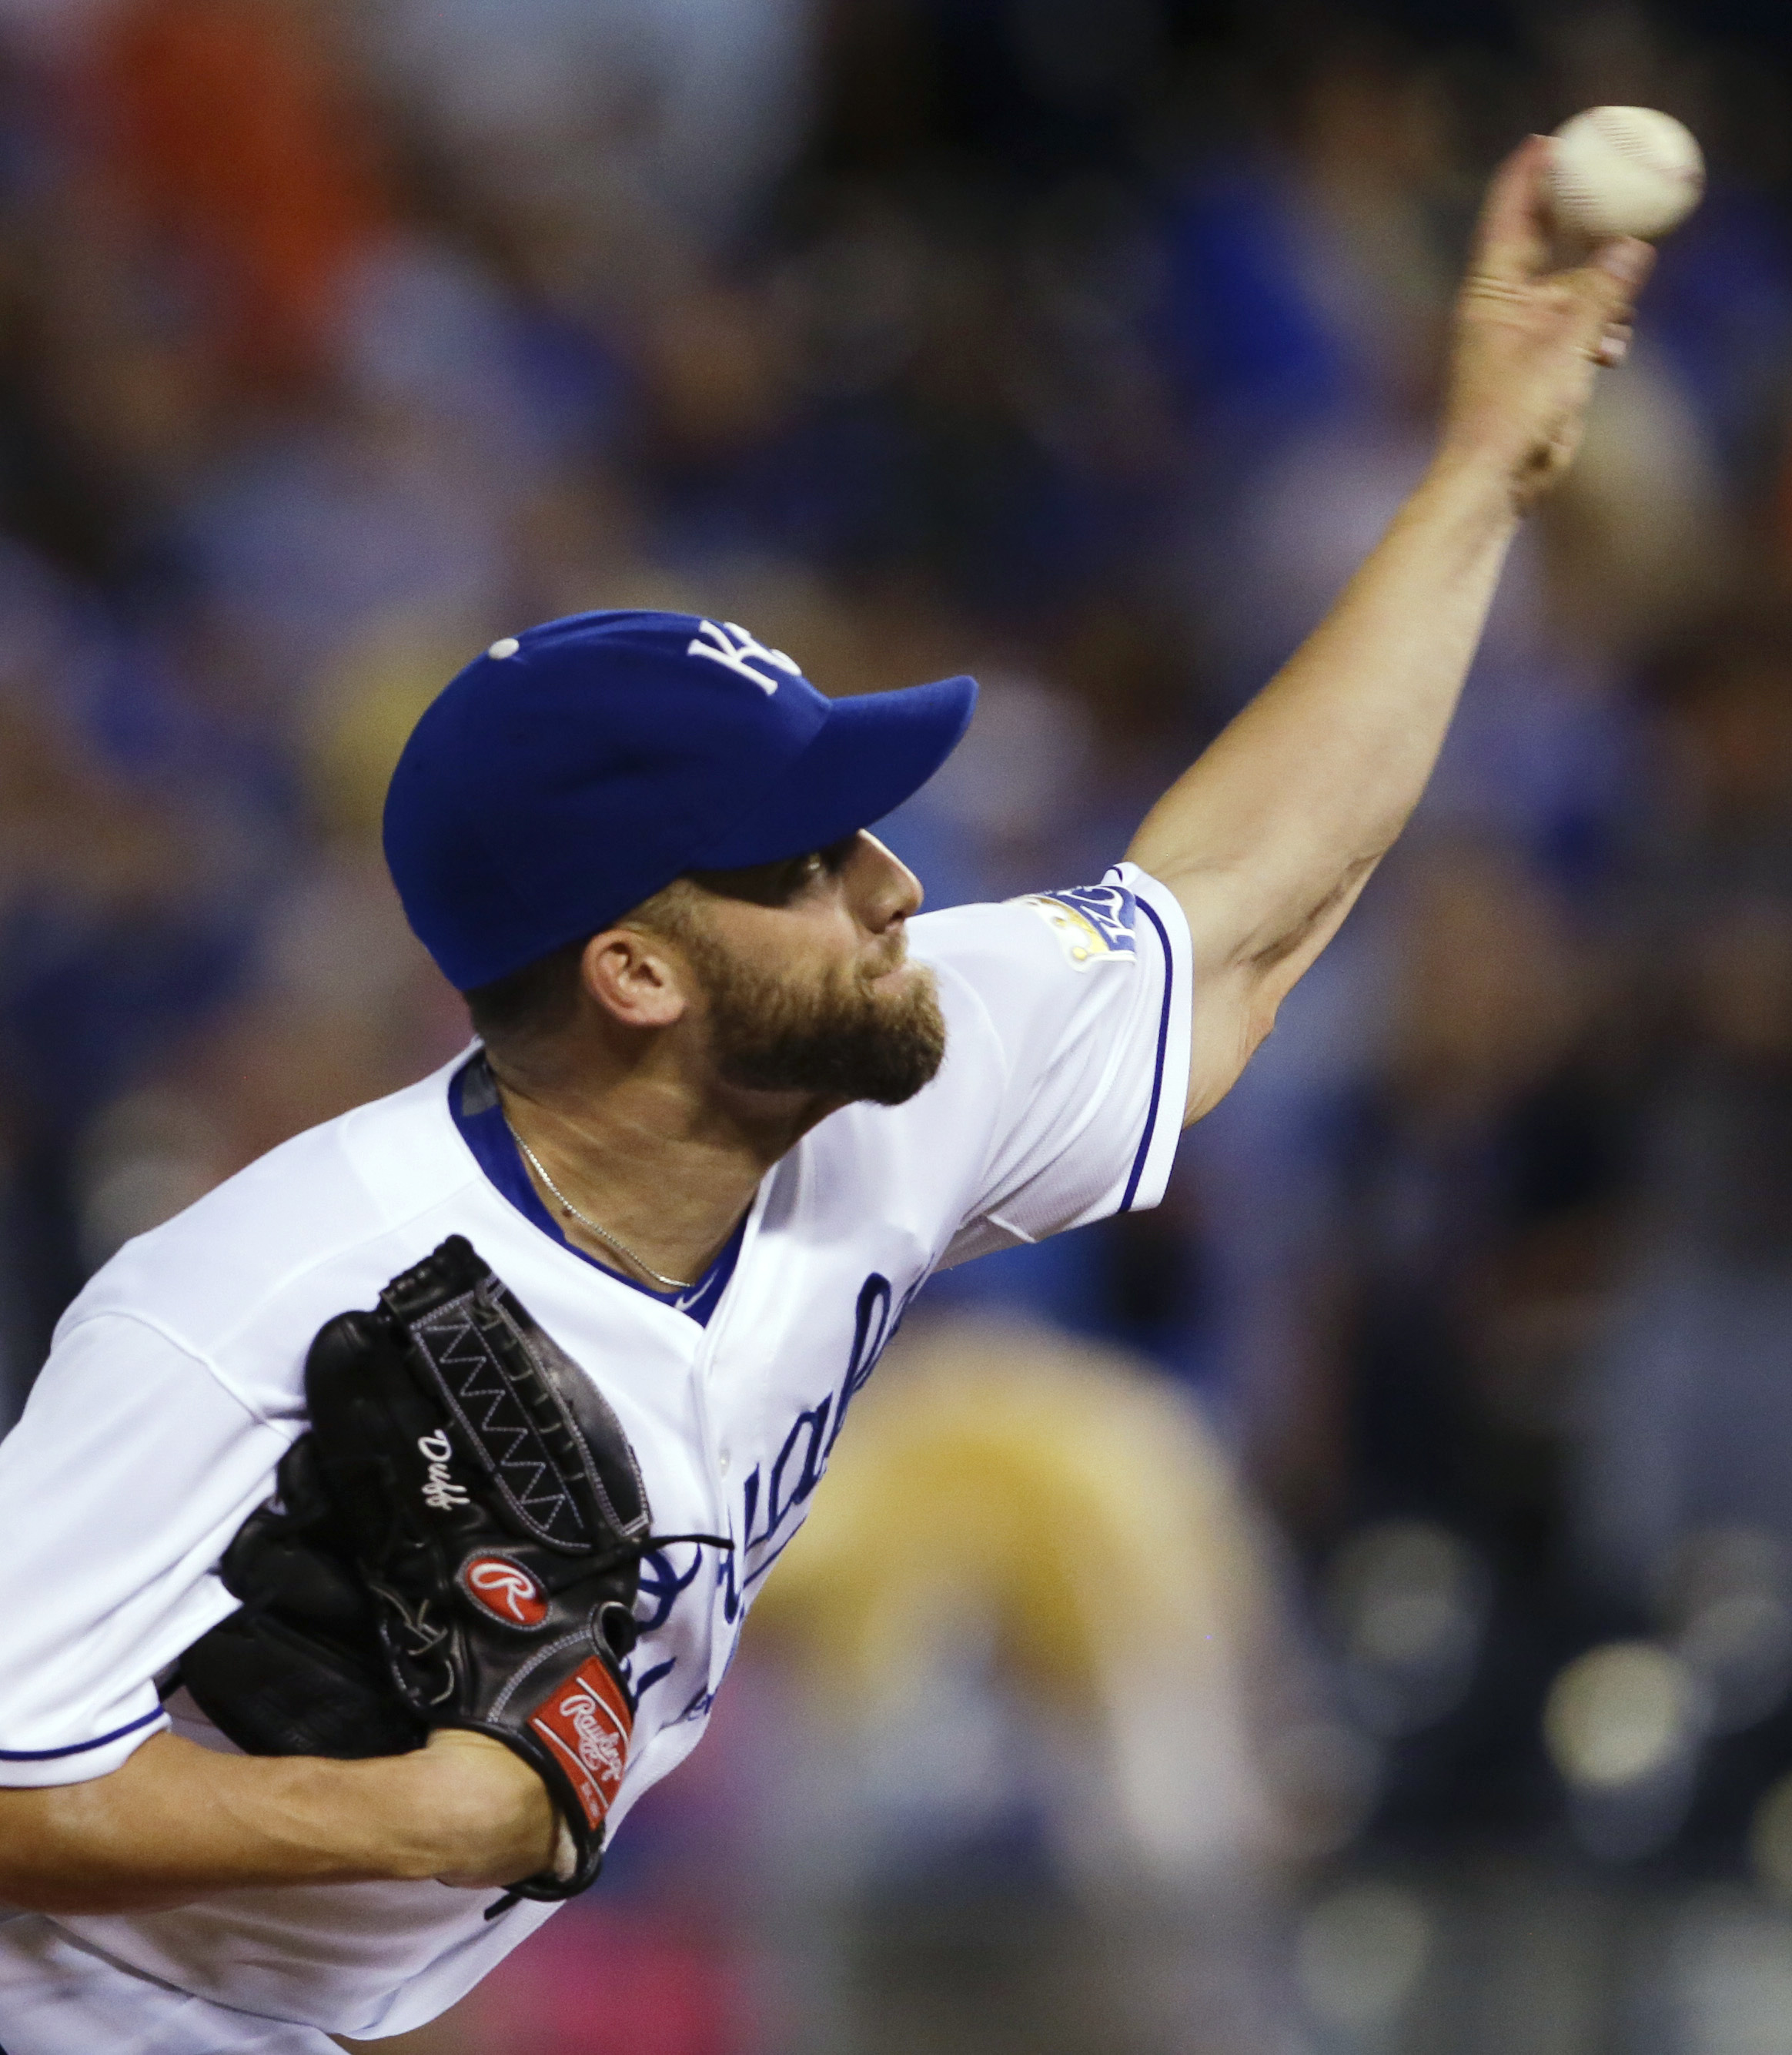 Kansas City Royals starting pitcher Danny Duffy delivers to a Toronto Blue Jays batter during the first inning of a baseball game at Kauffman Stadium in Kansas City, Mo., Friday, July 10, 2015. (AP Photo/Orlin Wagner)